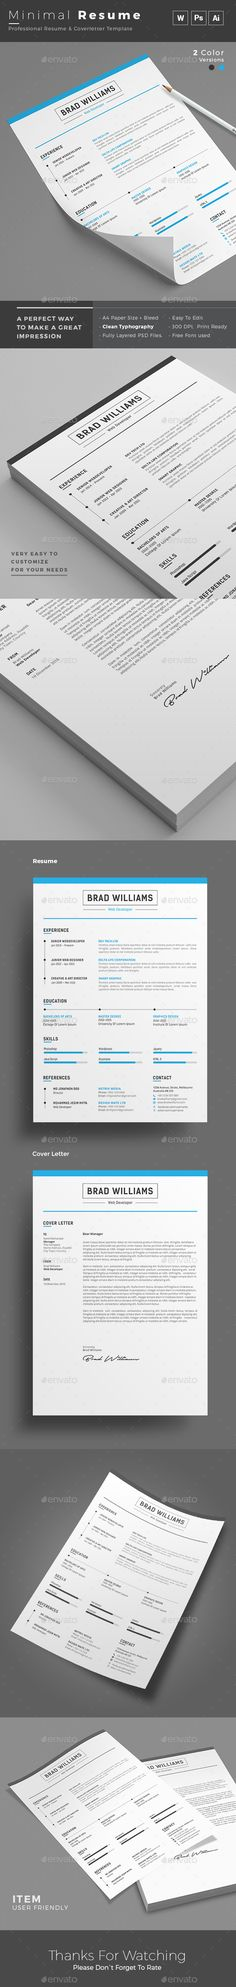 Resume  Free Cover Letter Professional Resume Template And